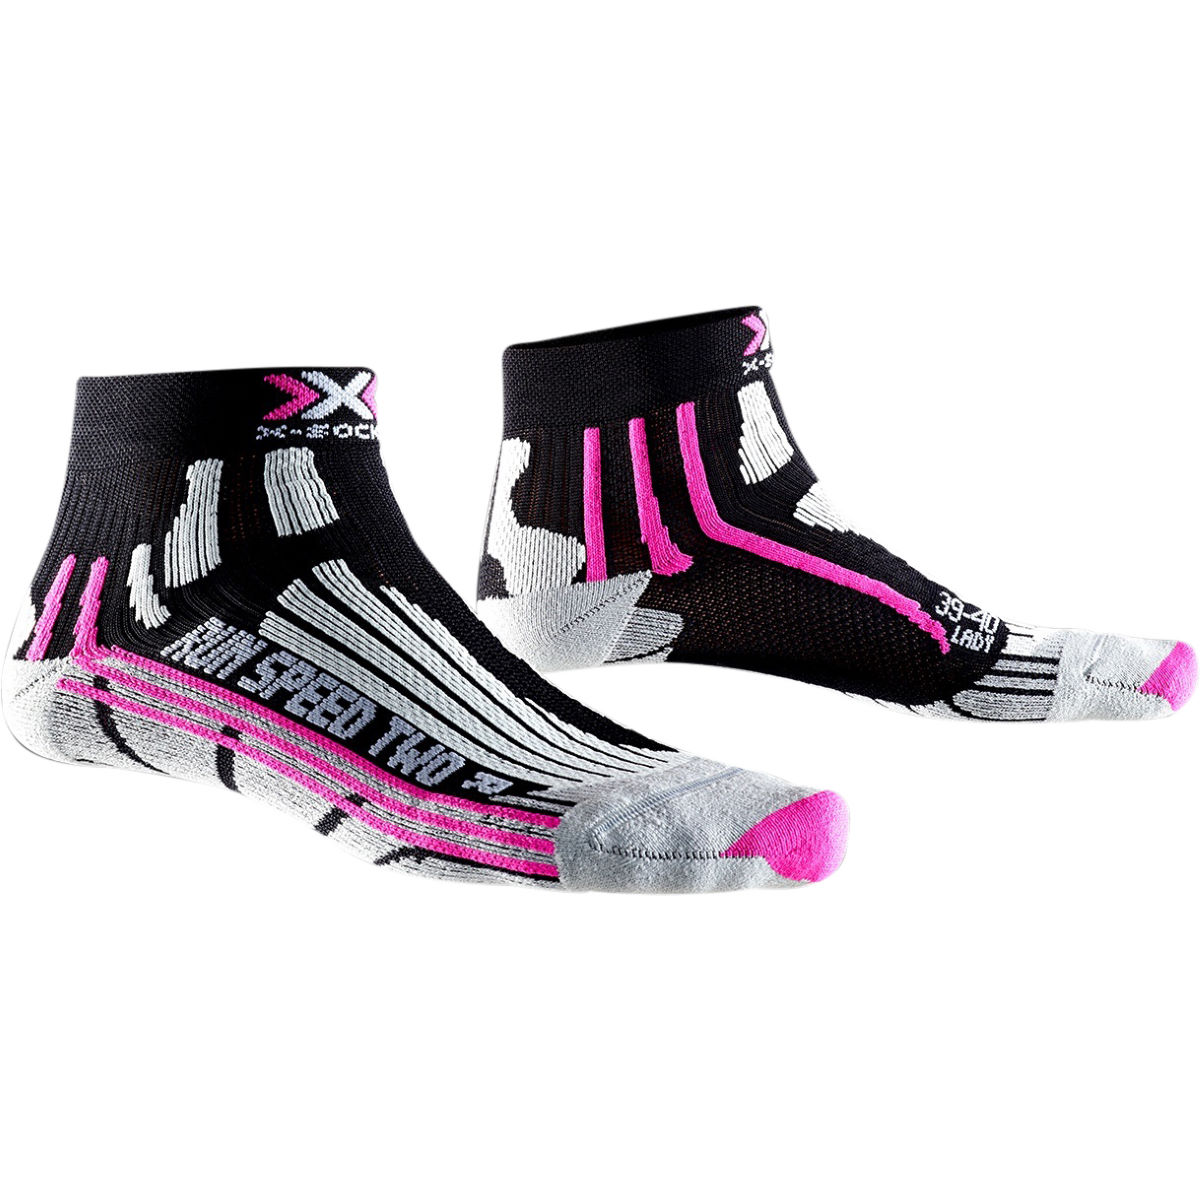 Chaussettes Femme X-Socks Run Speed Two - 2.5-3.5 UK Black/Fuchsia Chaussettes de running